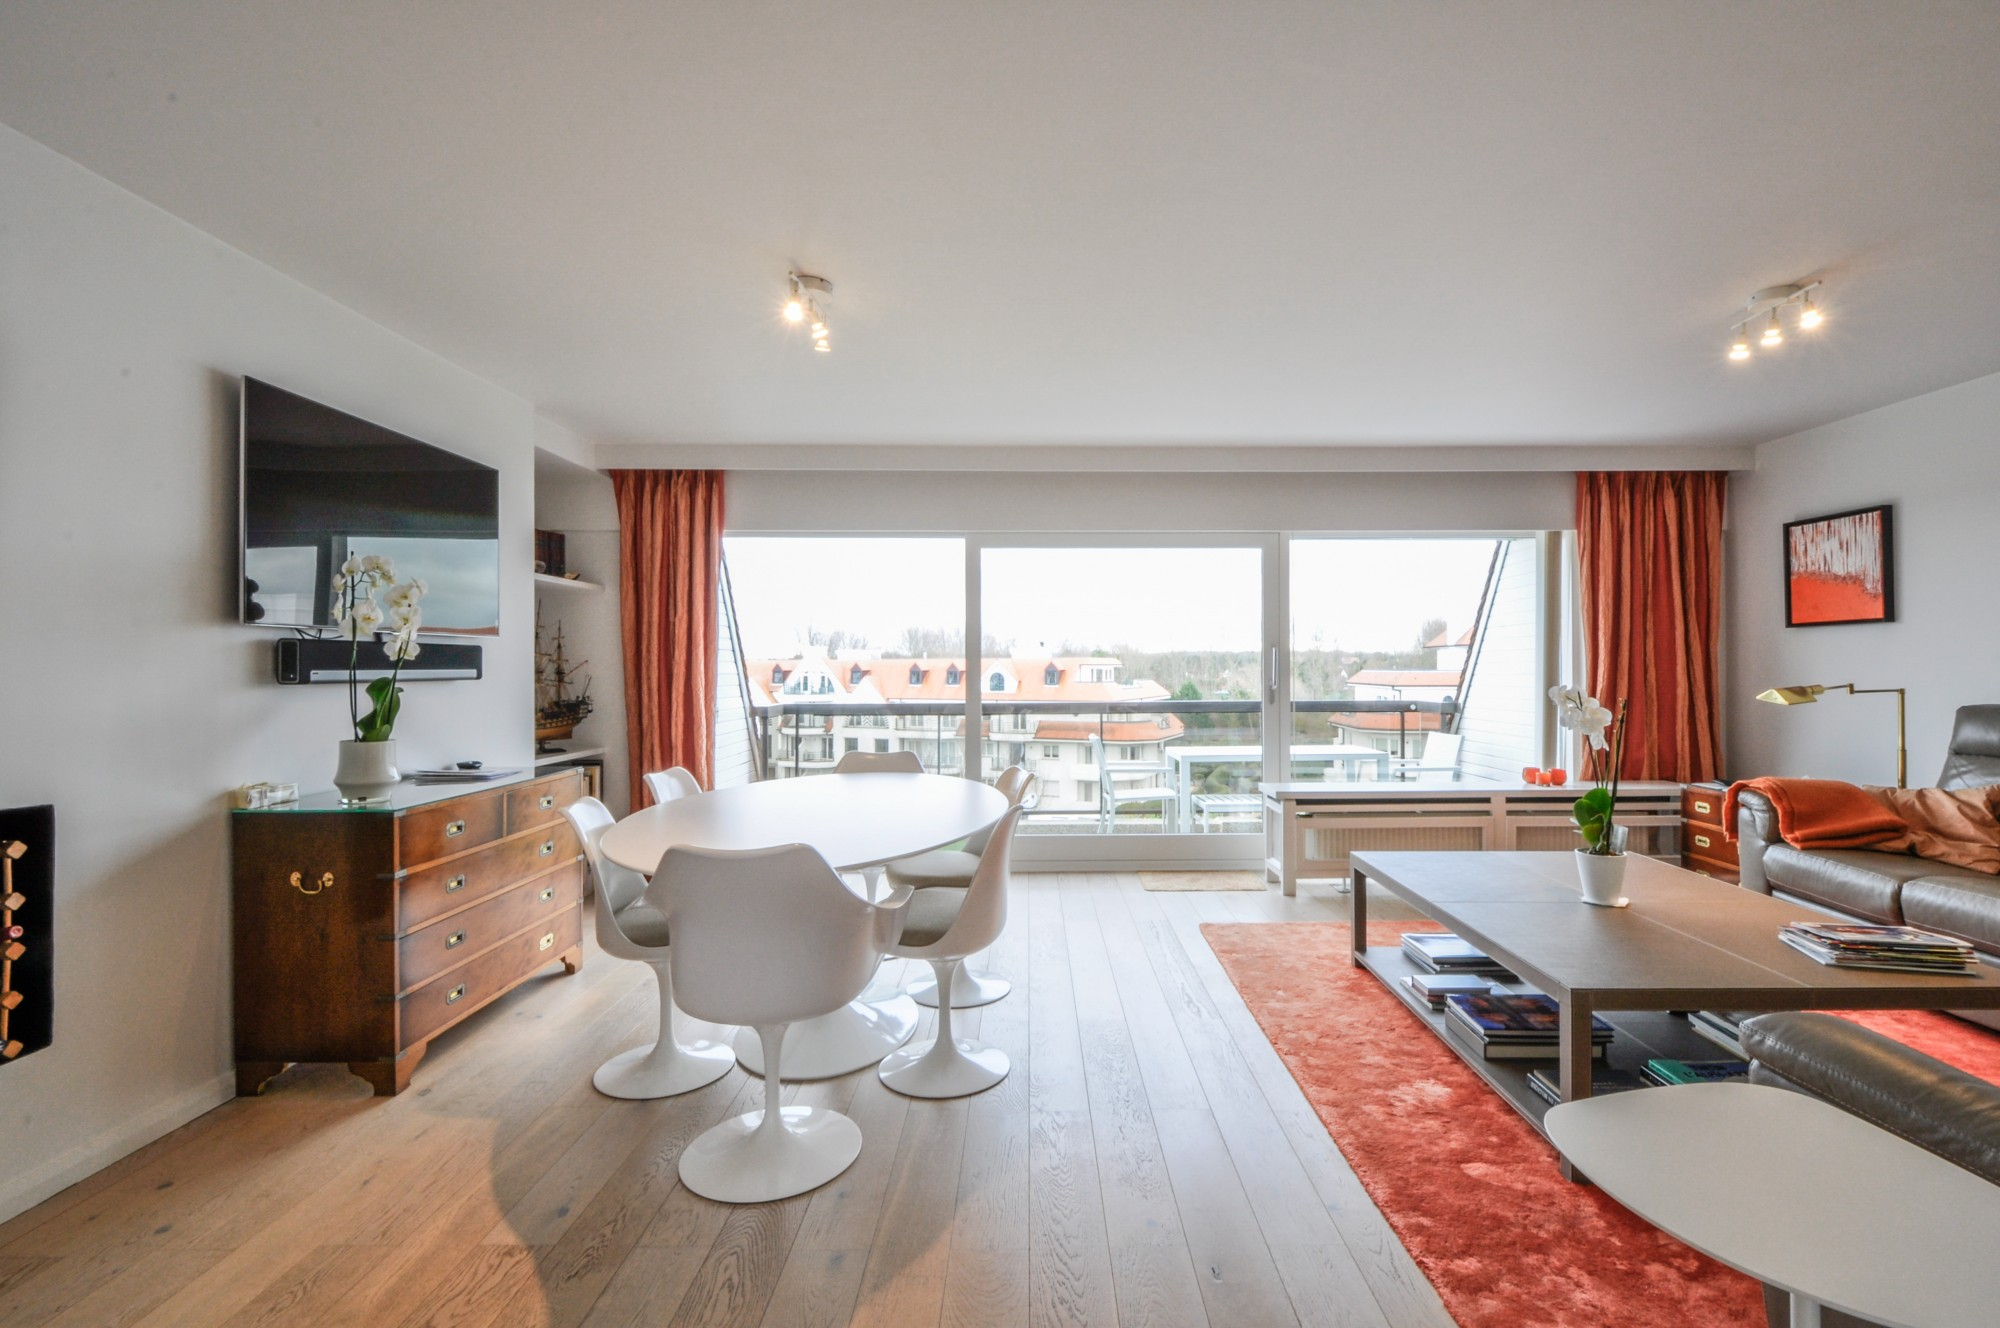 Location Appartement 2 CH Knokke-Zoute - villa résidentielle / East Court